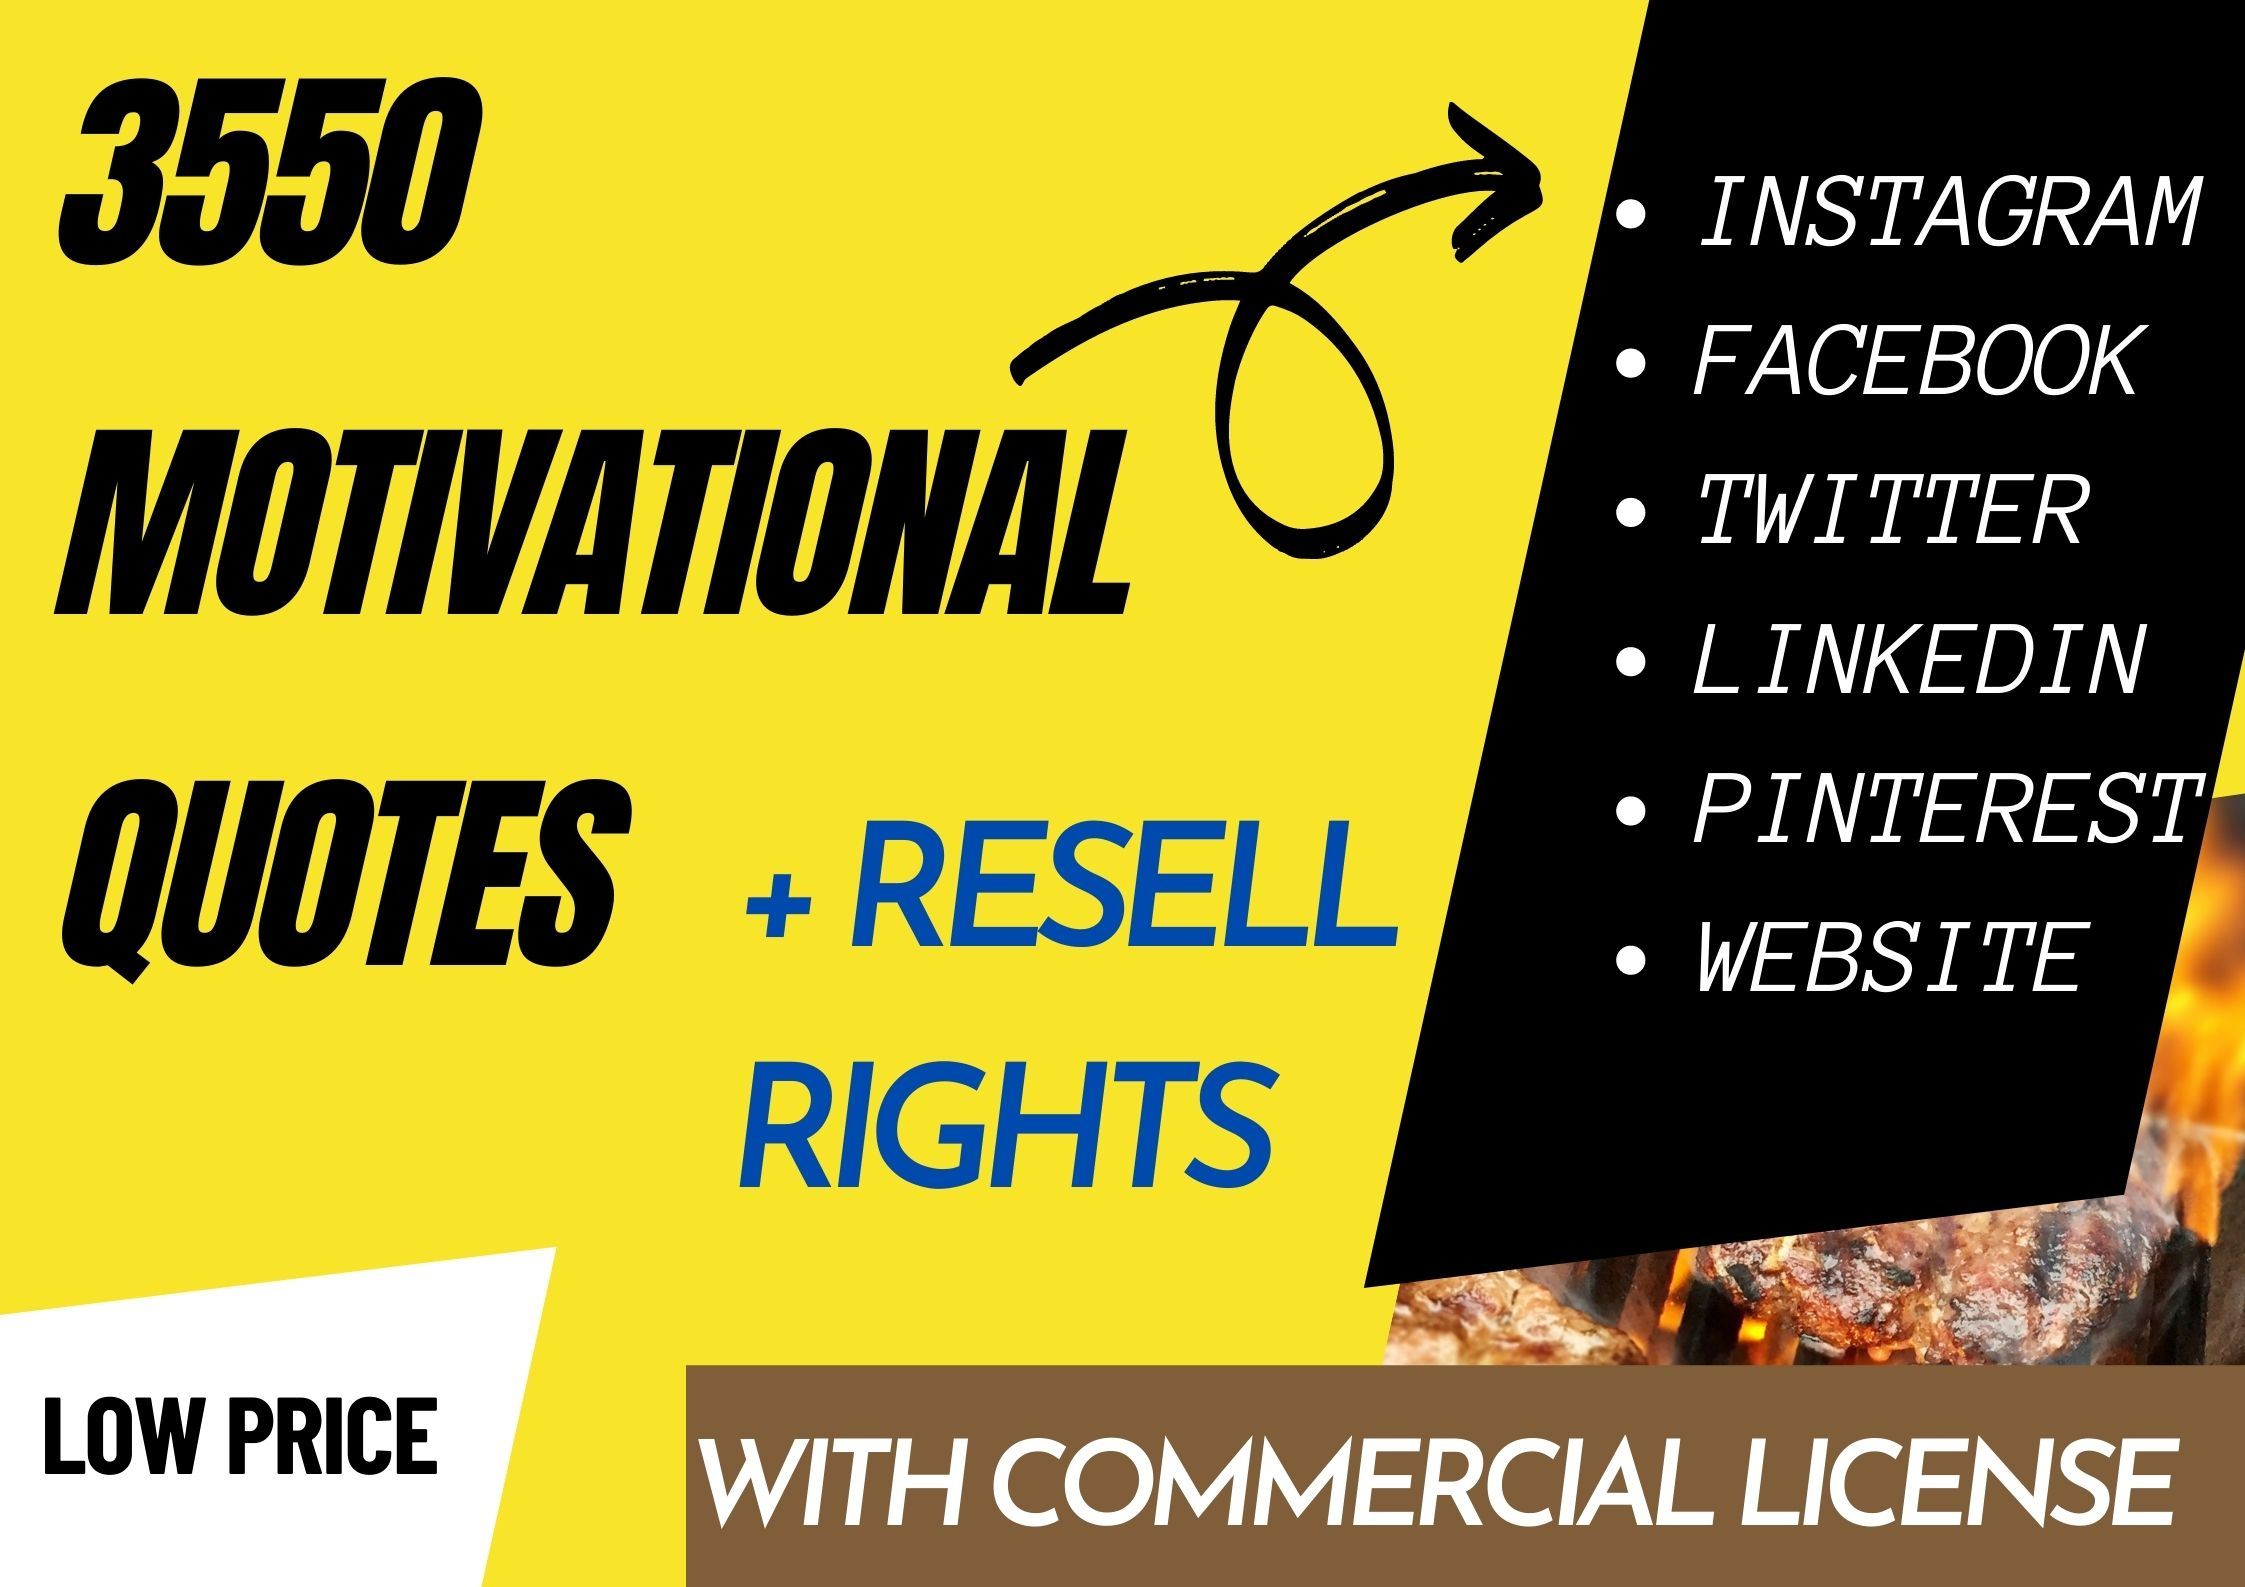 I will Provide 3550 Motivational Image Quotes With Resell Rights